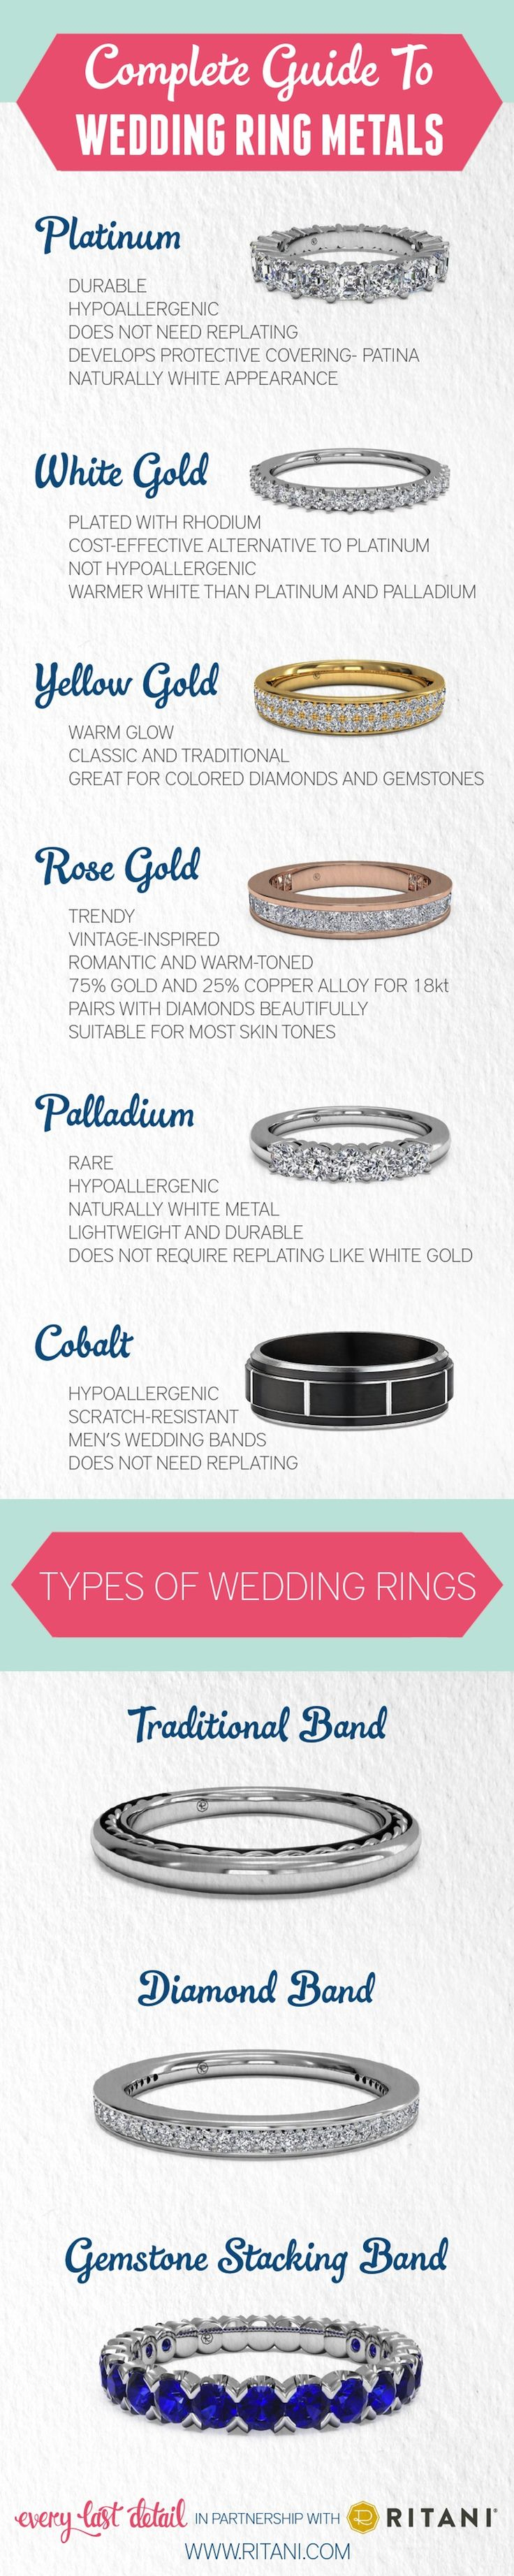 a complete guide to wedding ring metals - How Much Does A Wedding Ring Cost